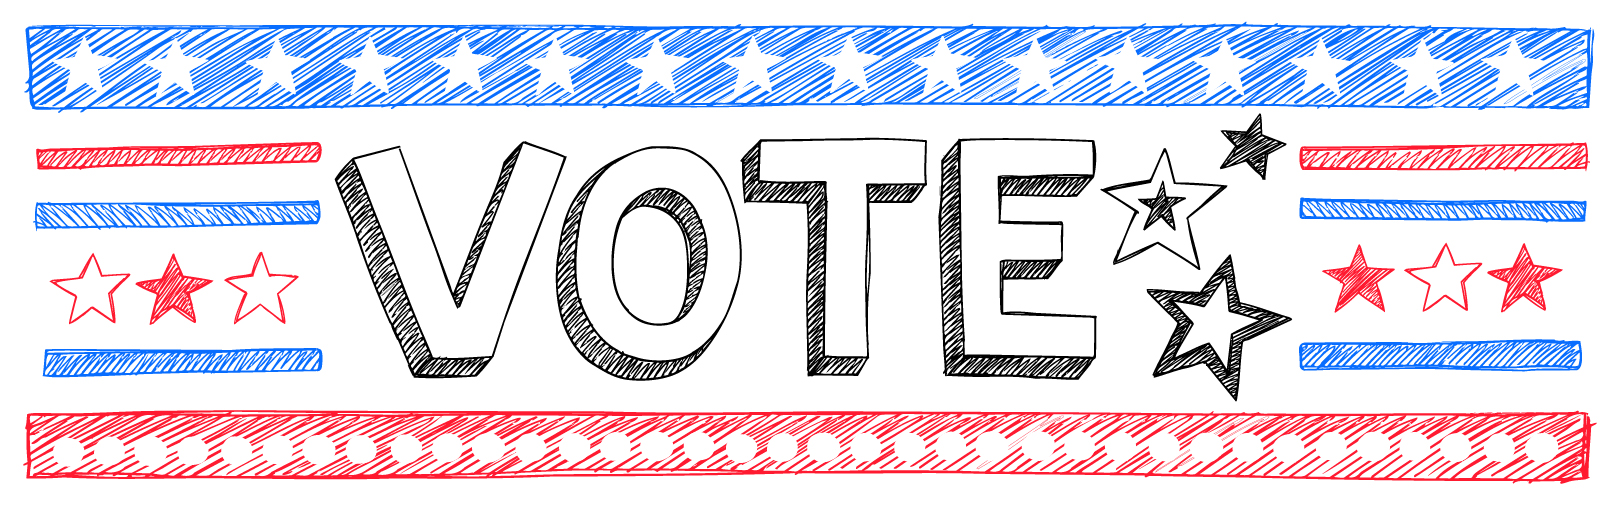 Voting clipart banner. Election